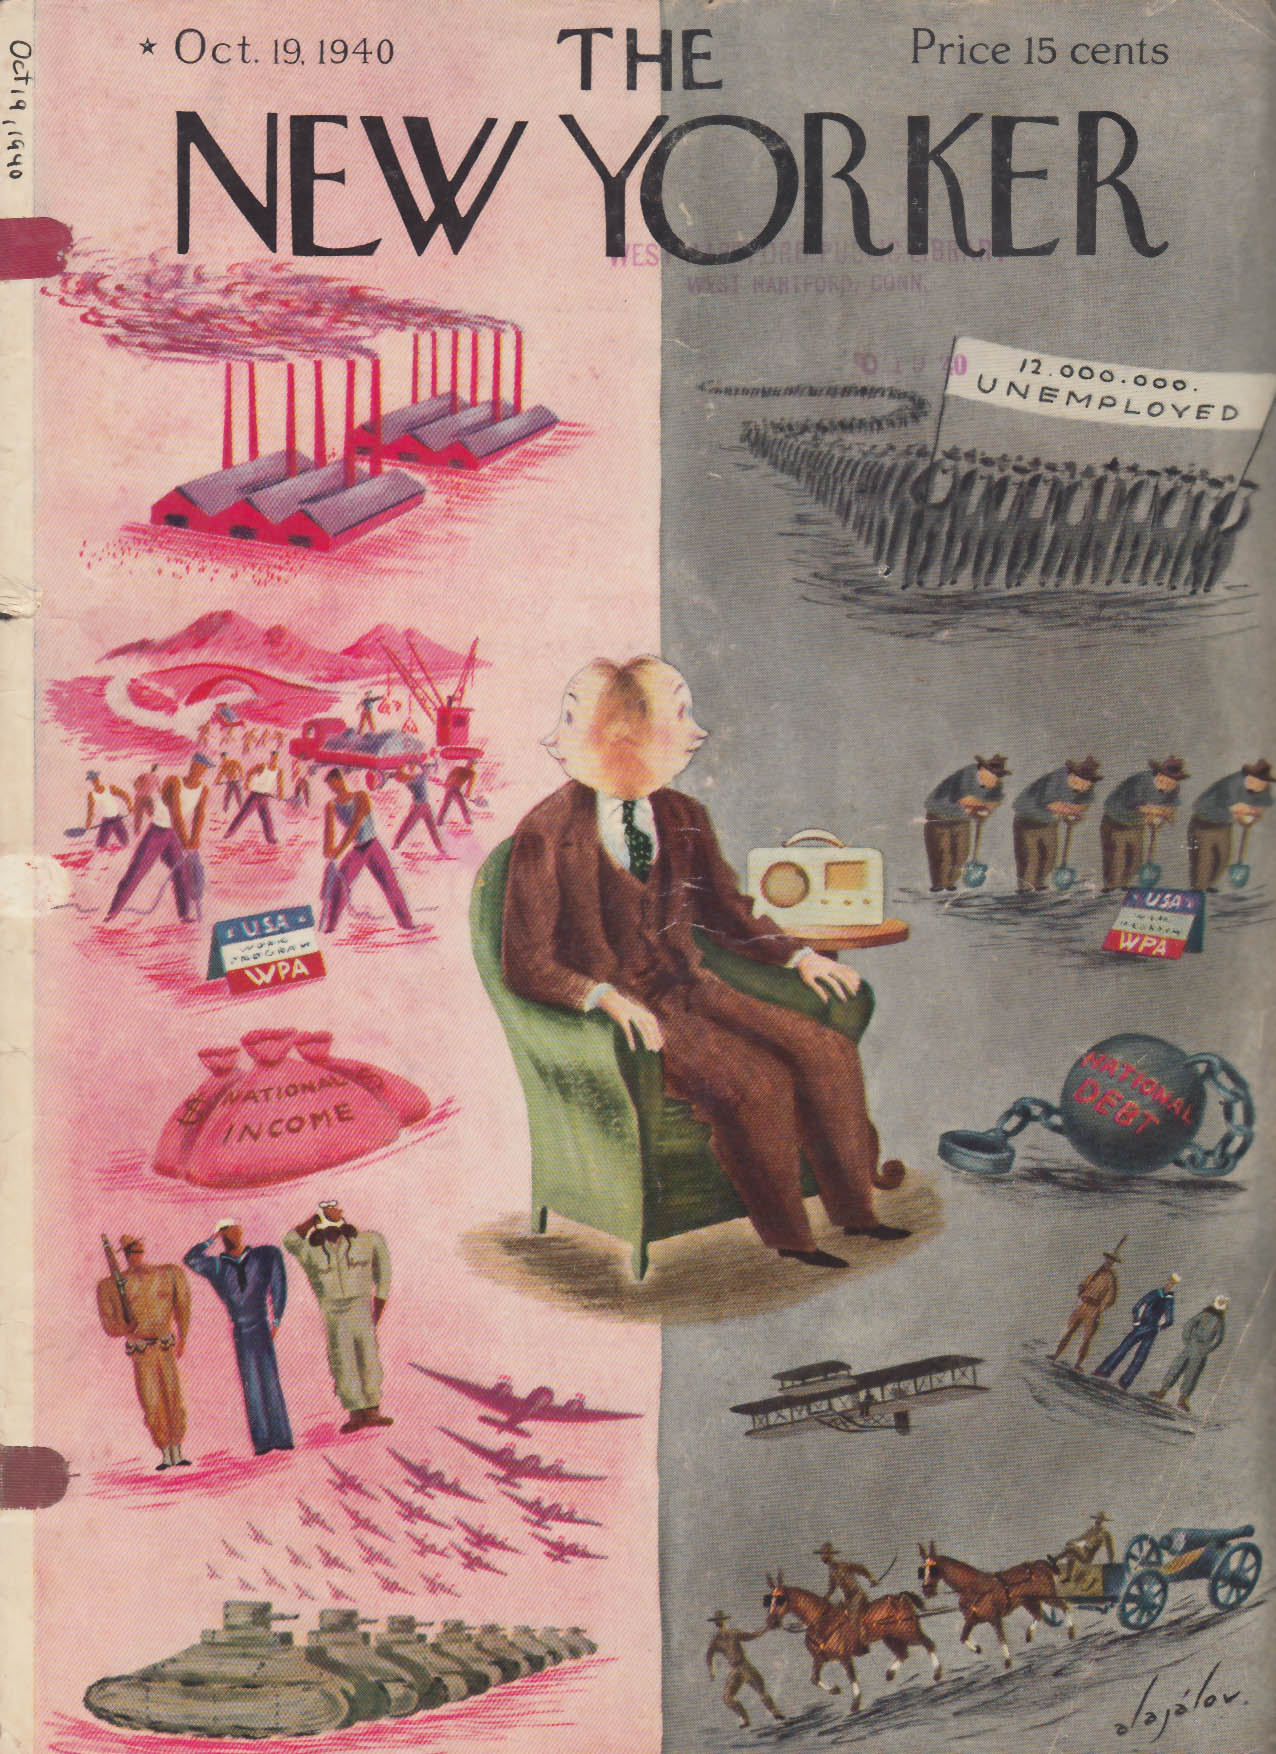 New Yorker cover Alajalov WPA war or peace? 10/19 1940